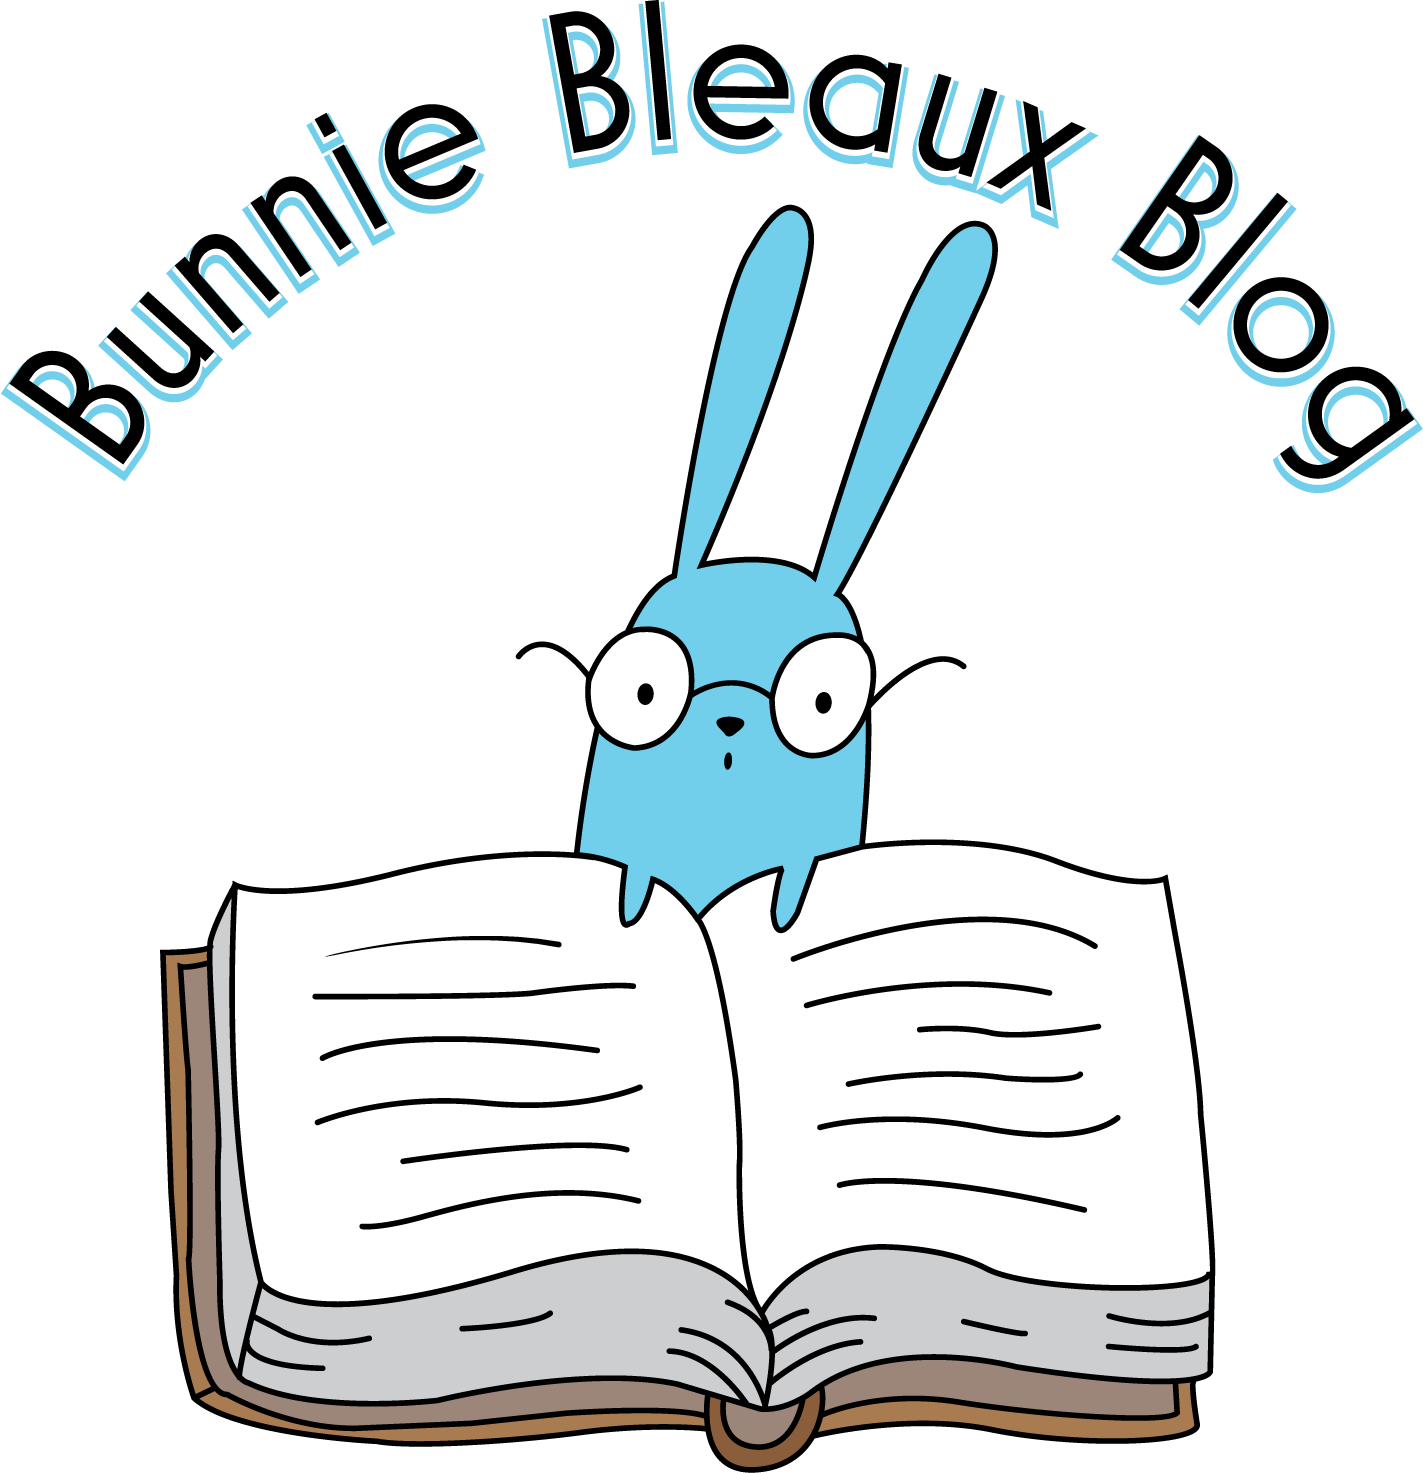 Chapter book exchange clipart png black and white bunnie bleaux – Reader of Books, Crafter of Crafts, Eater of Pizza png black and white